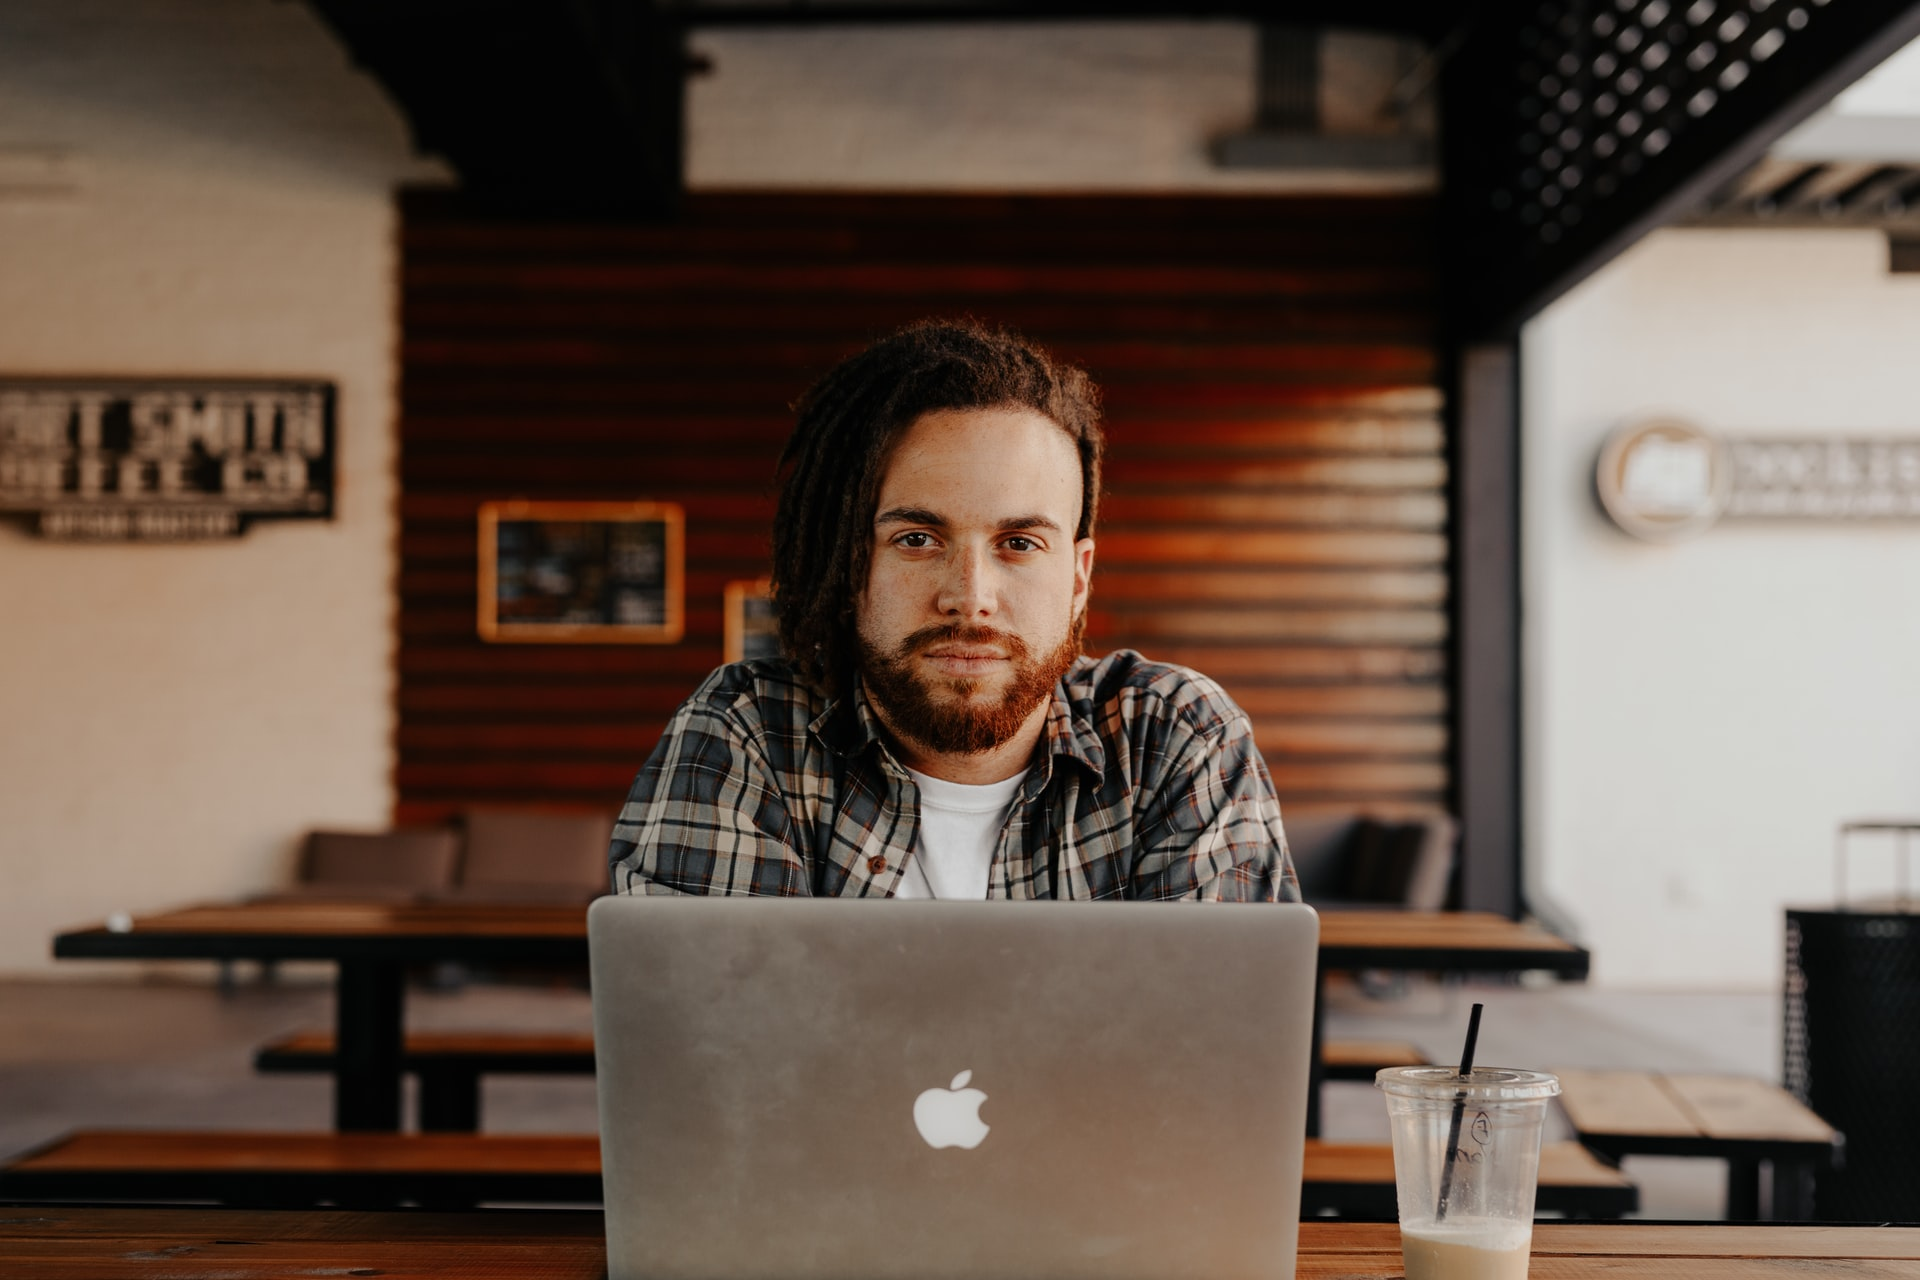 Starting a Digital Marketing Agency in College? How to Leverage Your College Network to Jumpstart Your Company